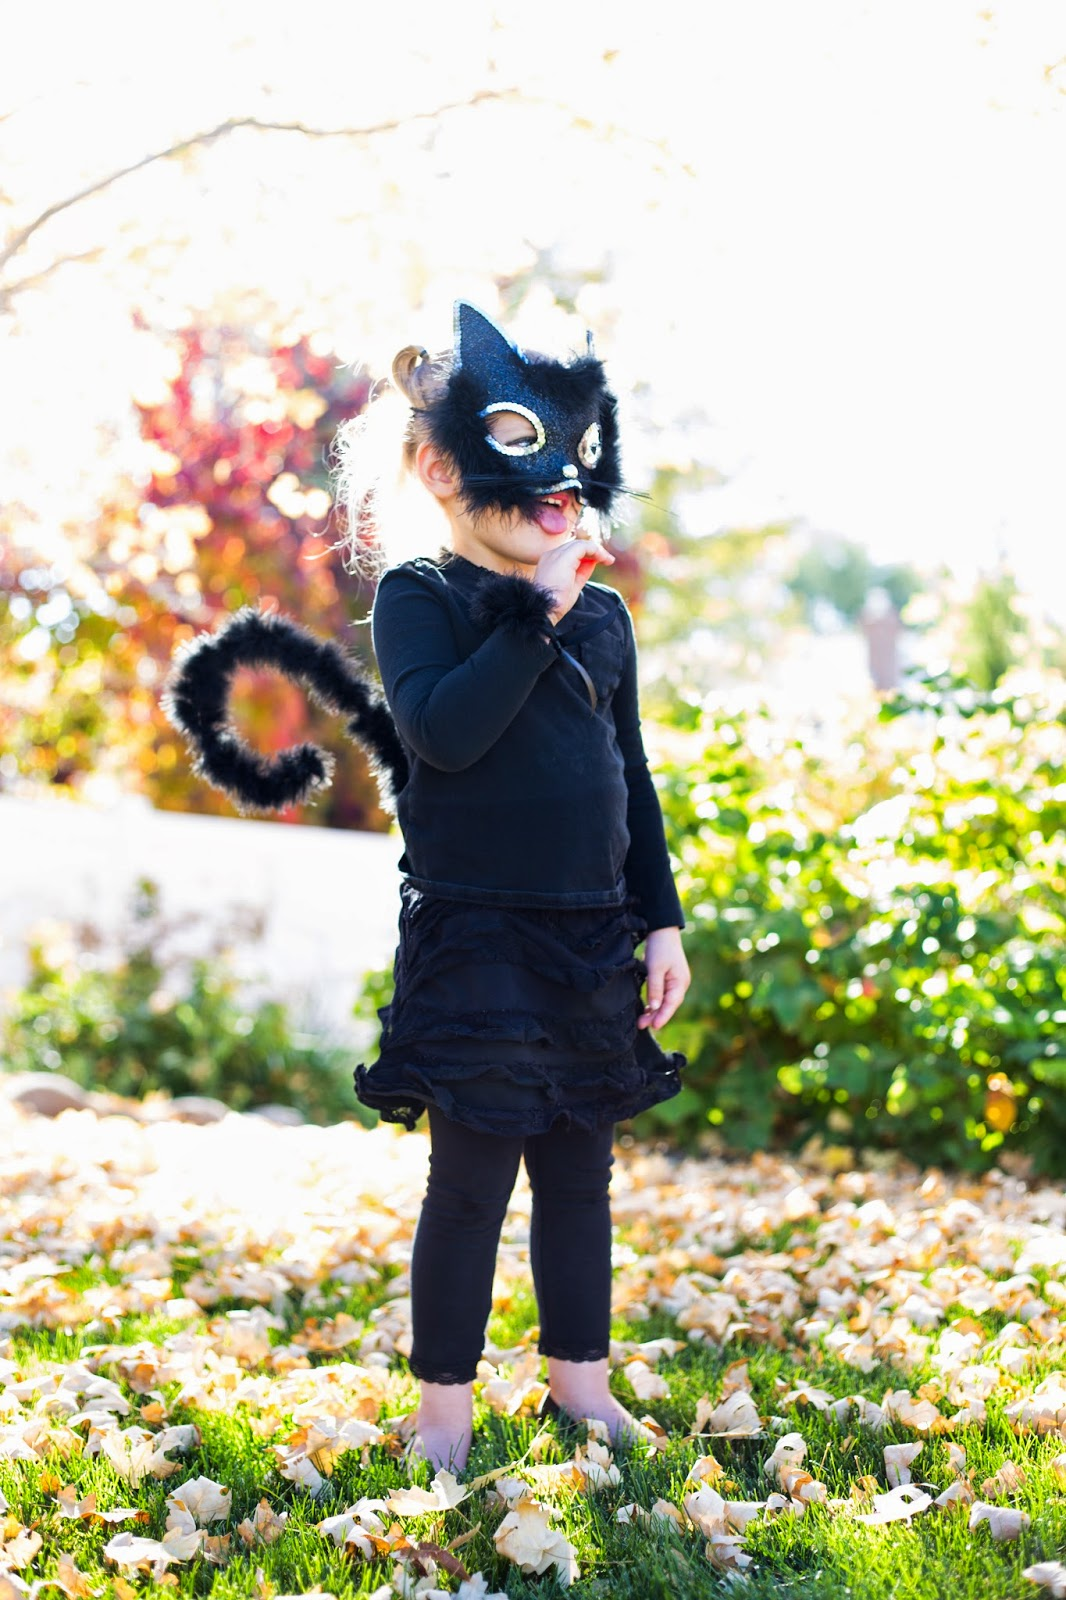 ... Cat Costume Tutorial to make this adorable kitty tail. Iu0027m so happy with how it turned out! Itu0027s a simple easy quick cheap and cute costume. & do it yourself as: Little Girl Cat Costume for Halloween